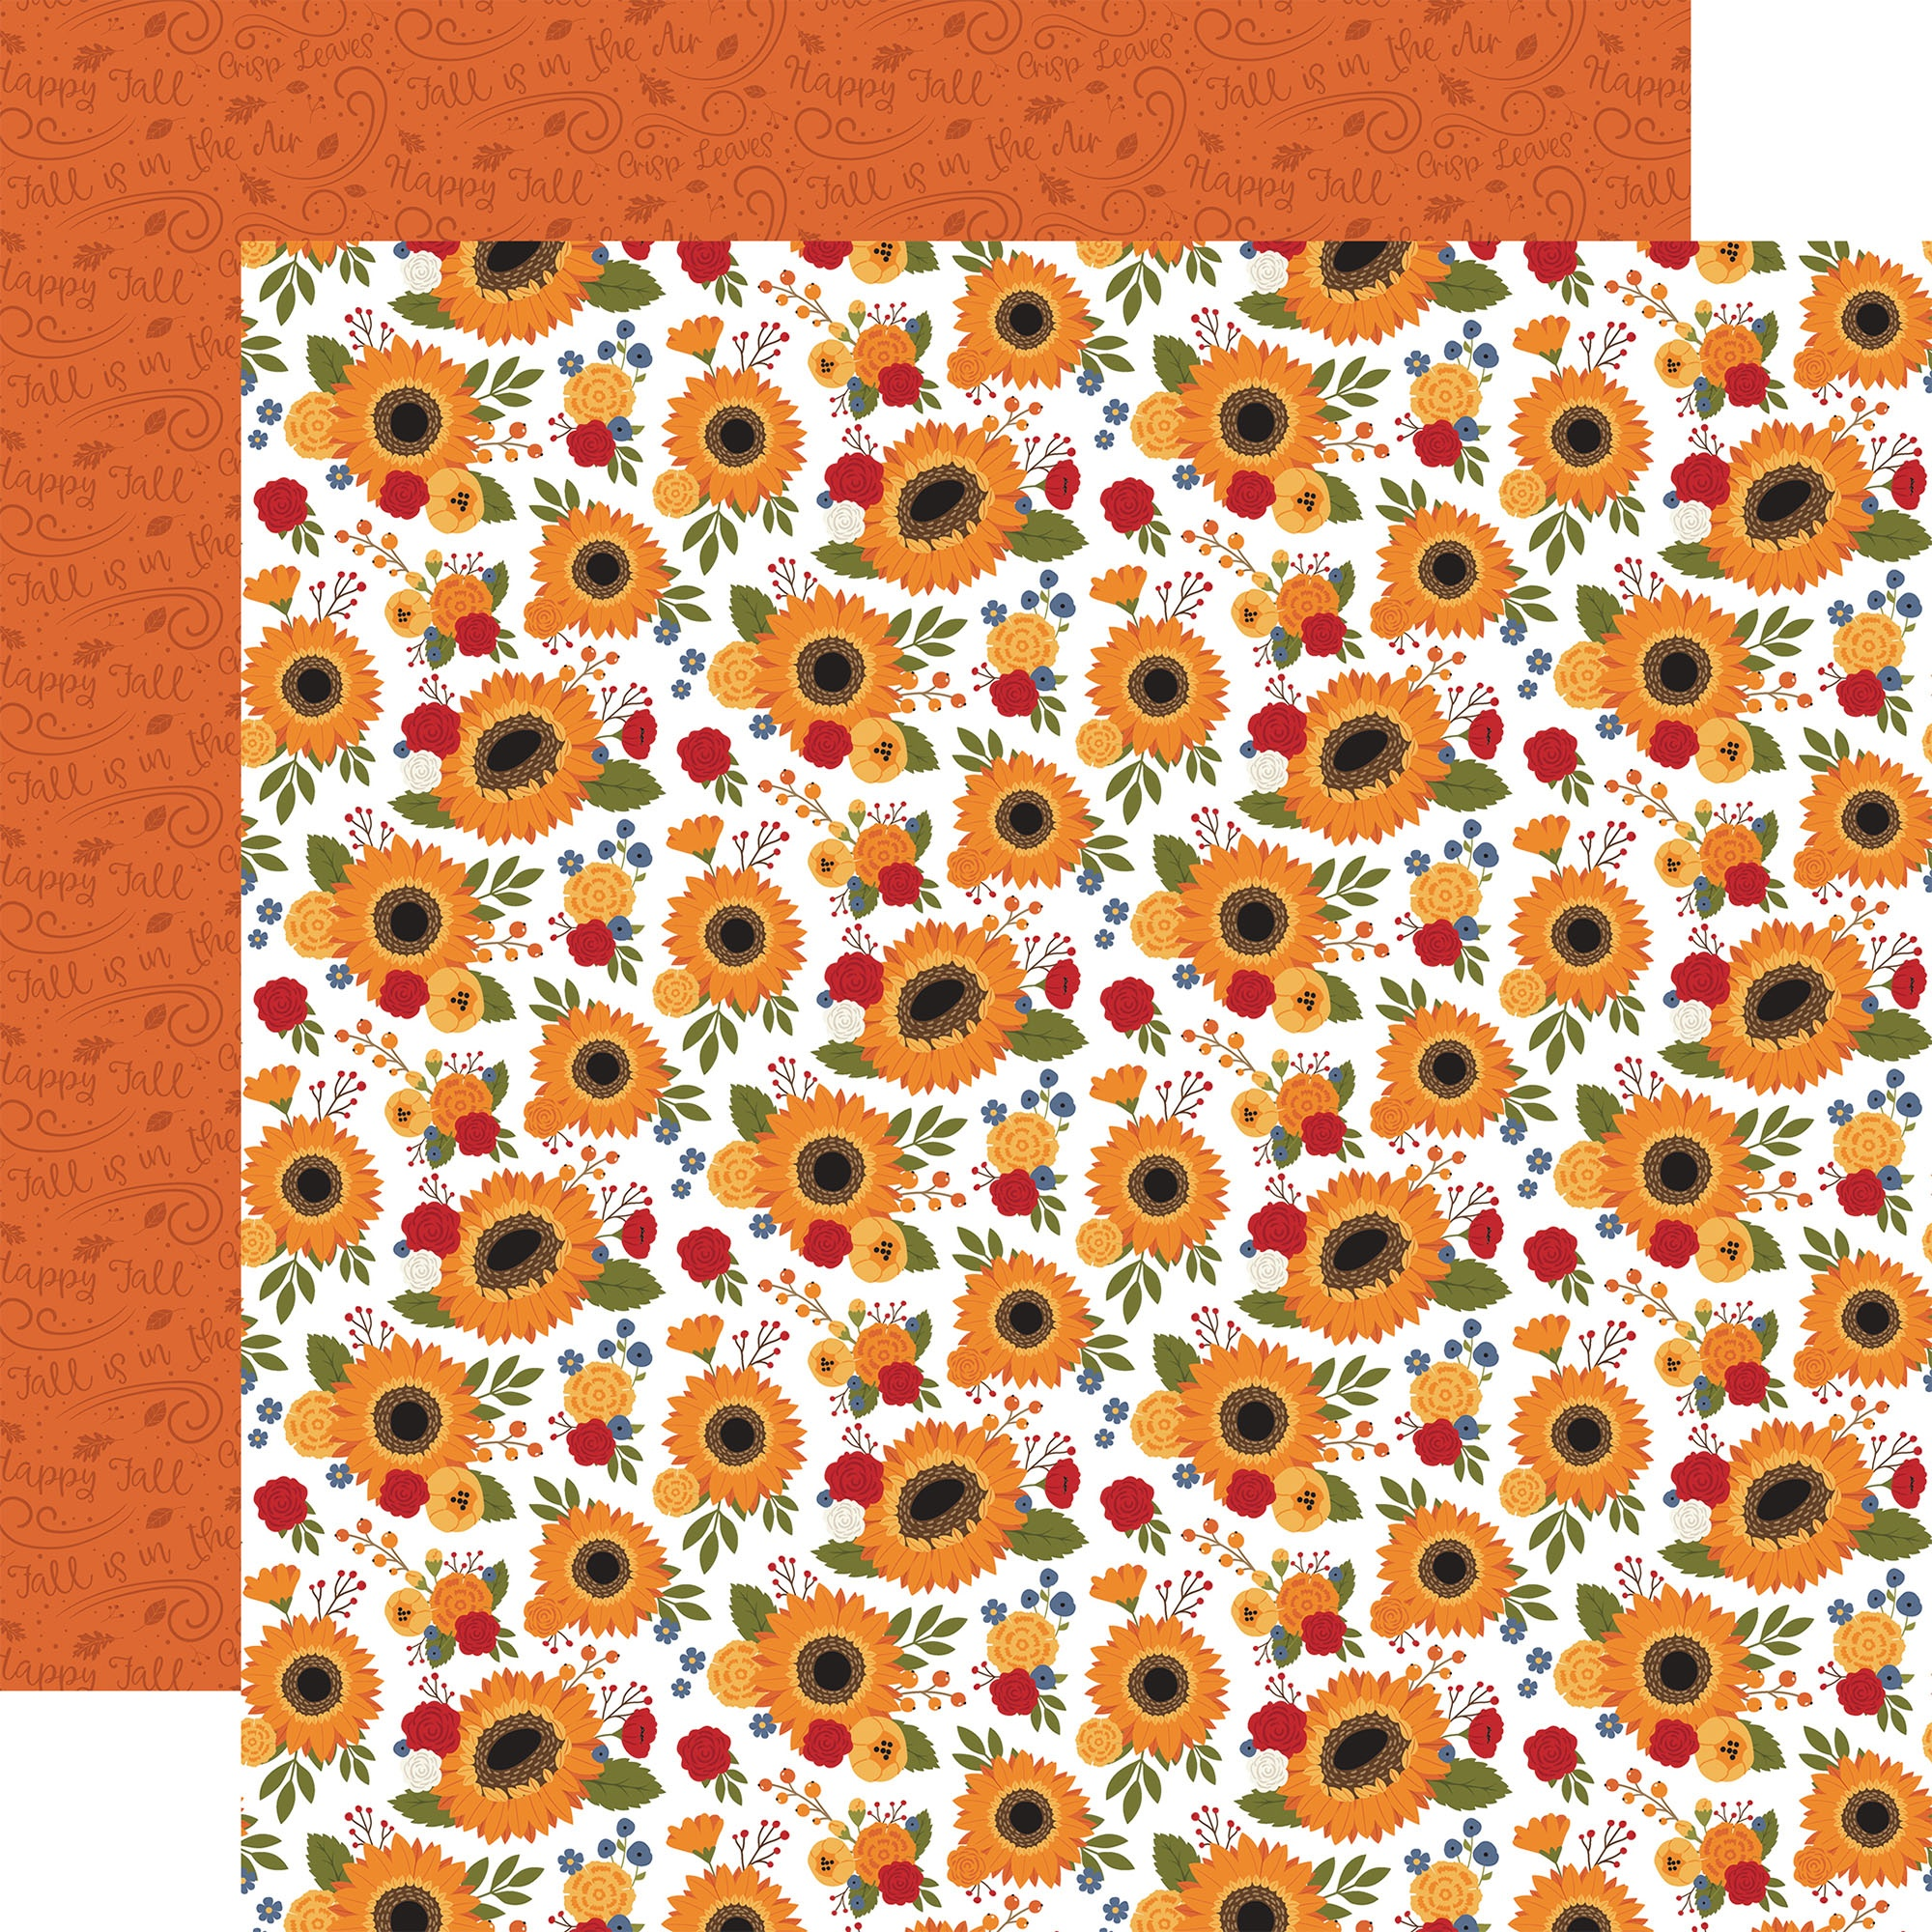 Echo Park - Fall - FAMILY FARM FLORAL - 12x12 Double-Sided Paper